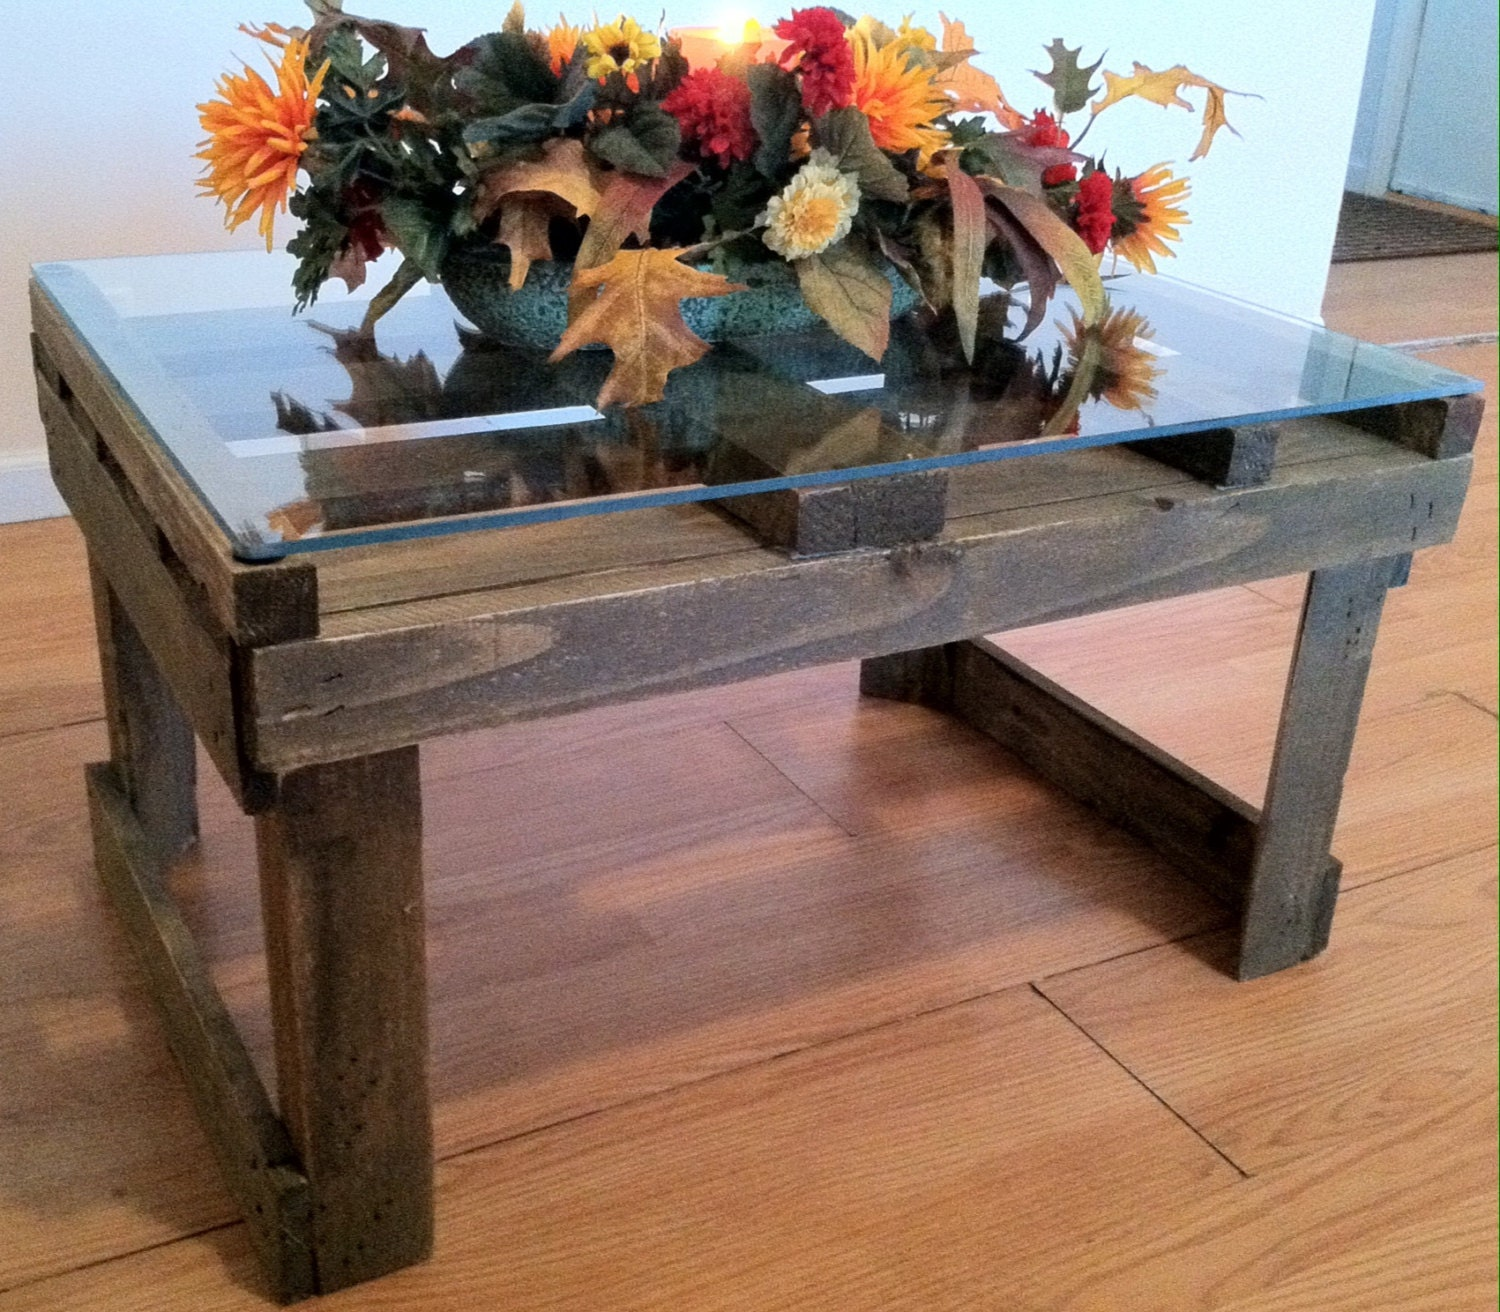 Glass Coffee Tables Etsy: Reclaimed Crate Coffee Table With Glass Top By Kustomwood